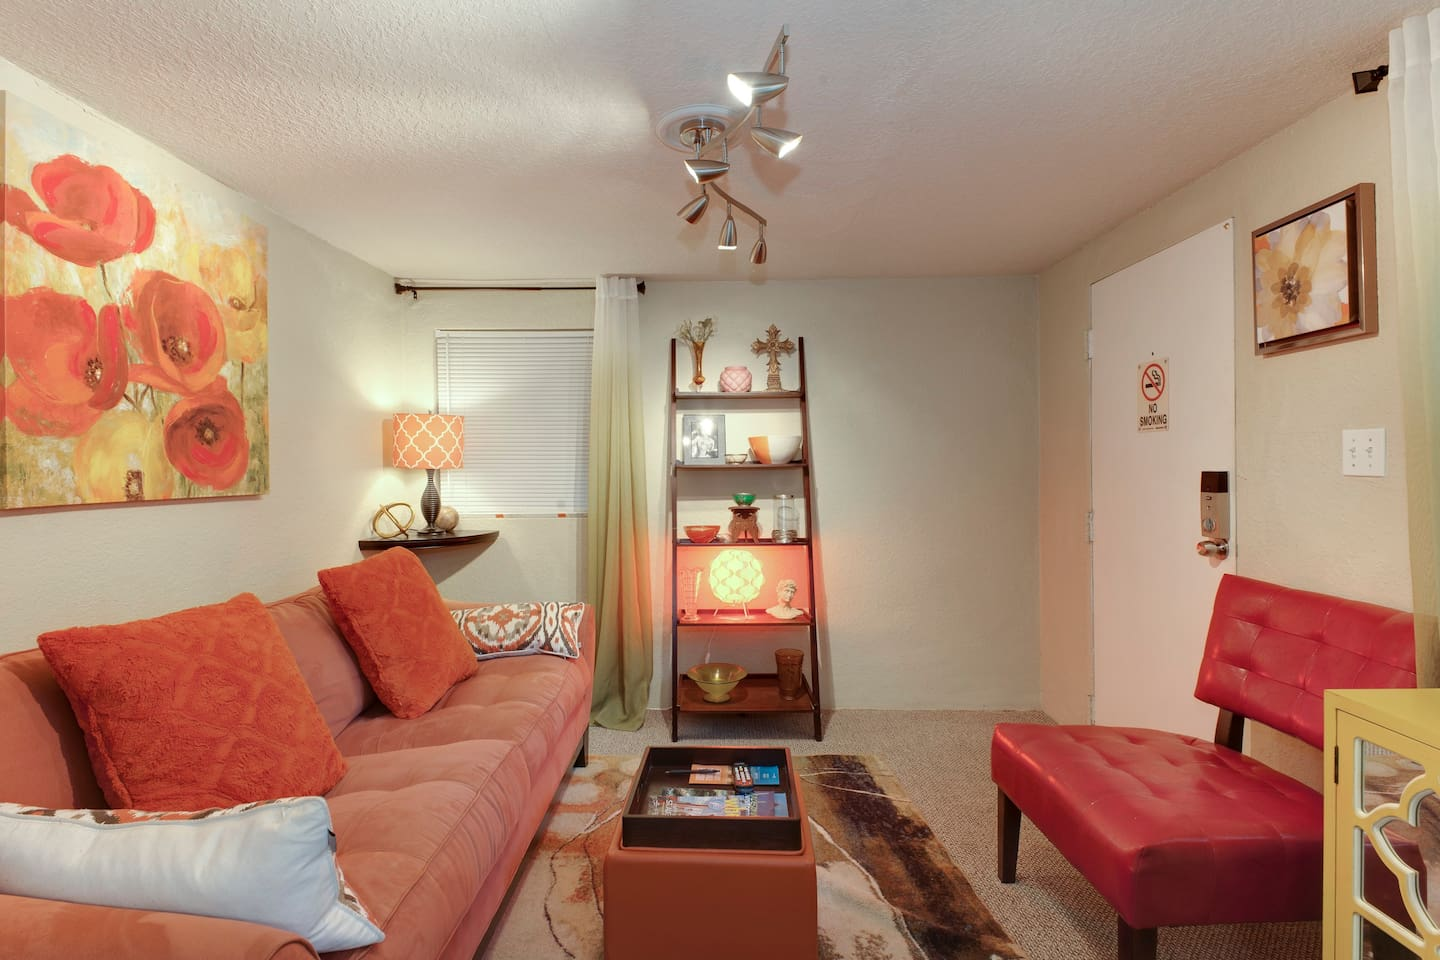 Brightly colored palette in the living room with plenty of charm.